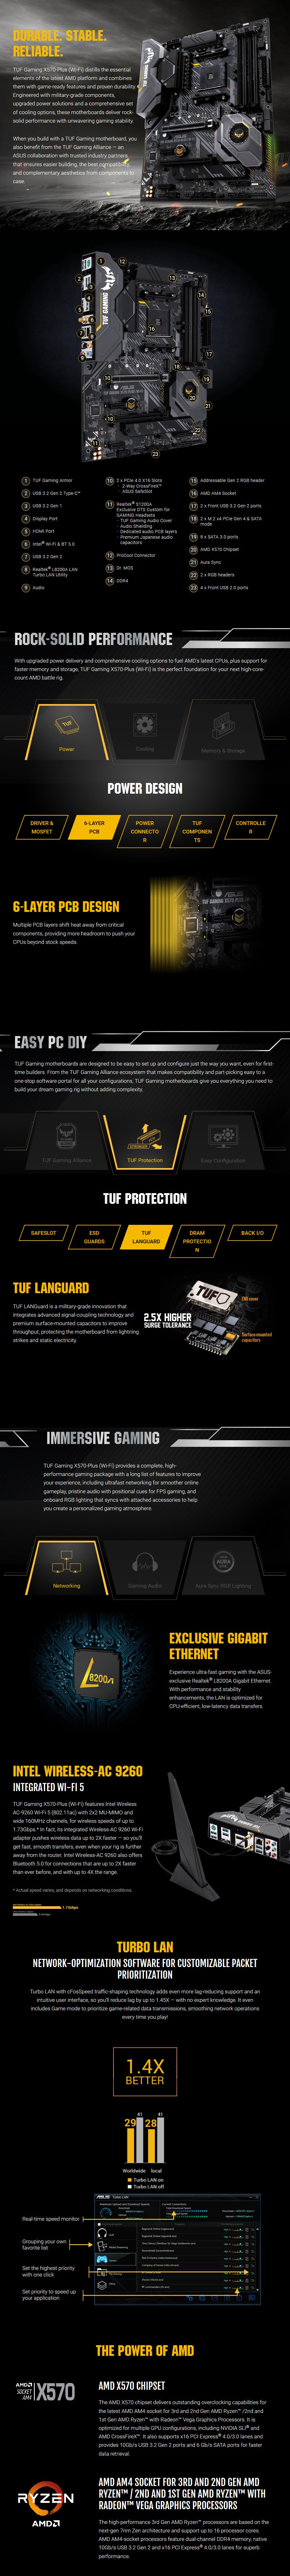 ASUS TUF Gaming X570 Plus WiFi AM4 ATX Motherboard - Overview 1